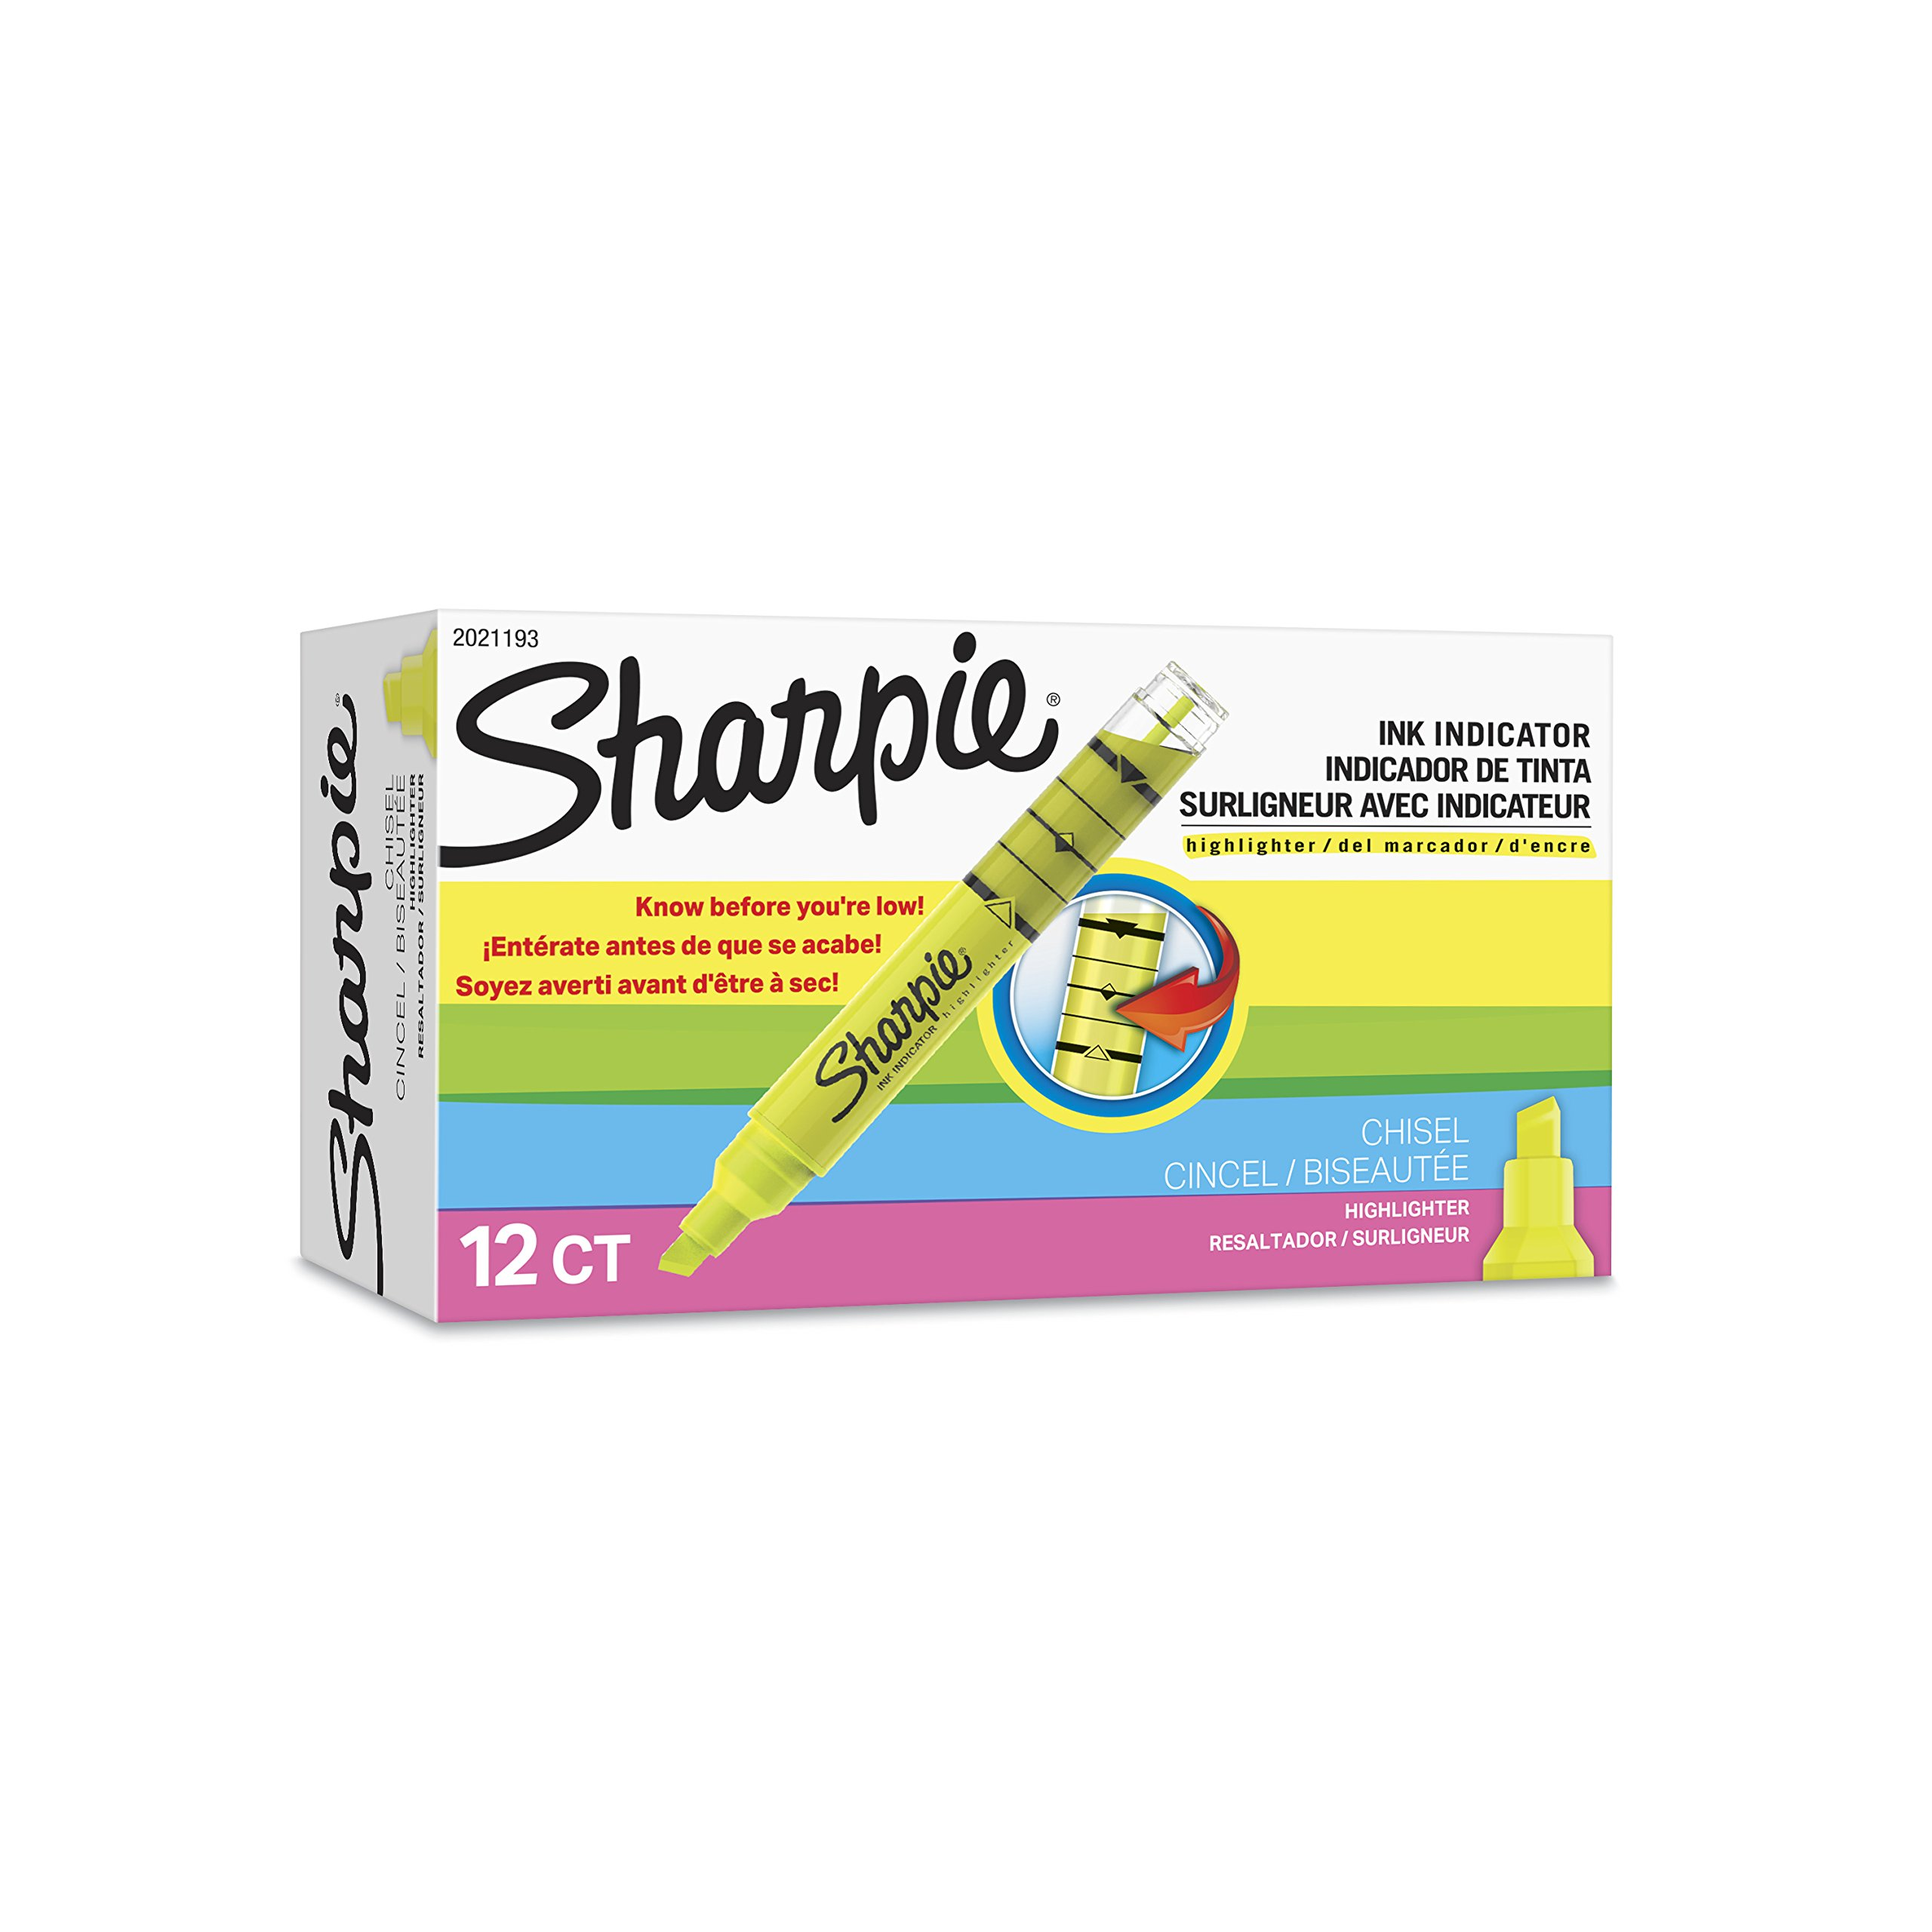 Sharpie Ink Indicator Tank Highlighters, Chisel Tip, Fluorescent Yellow, 12 Count by Sharpie (Image #6)